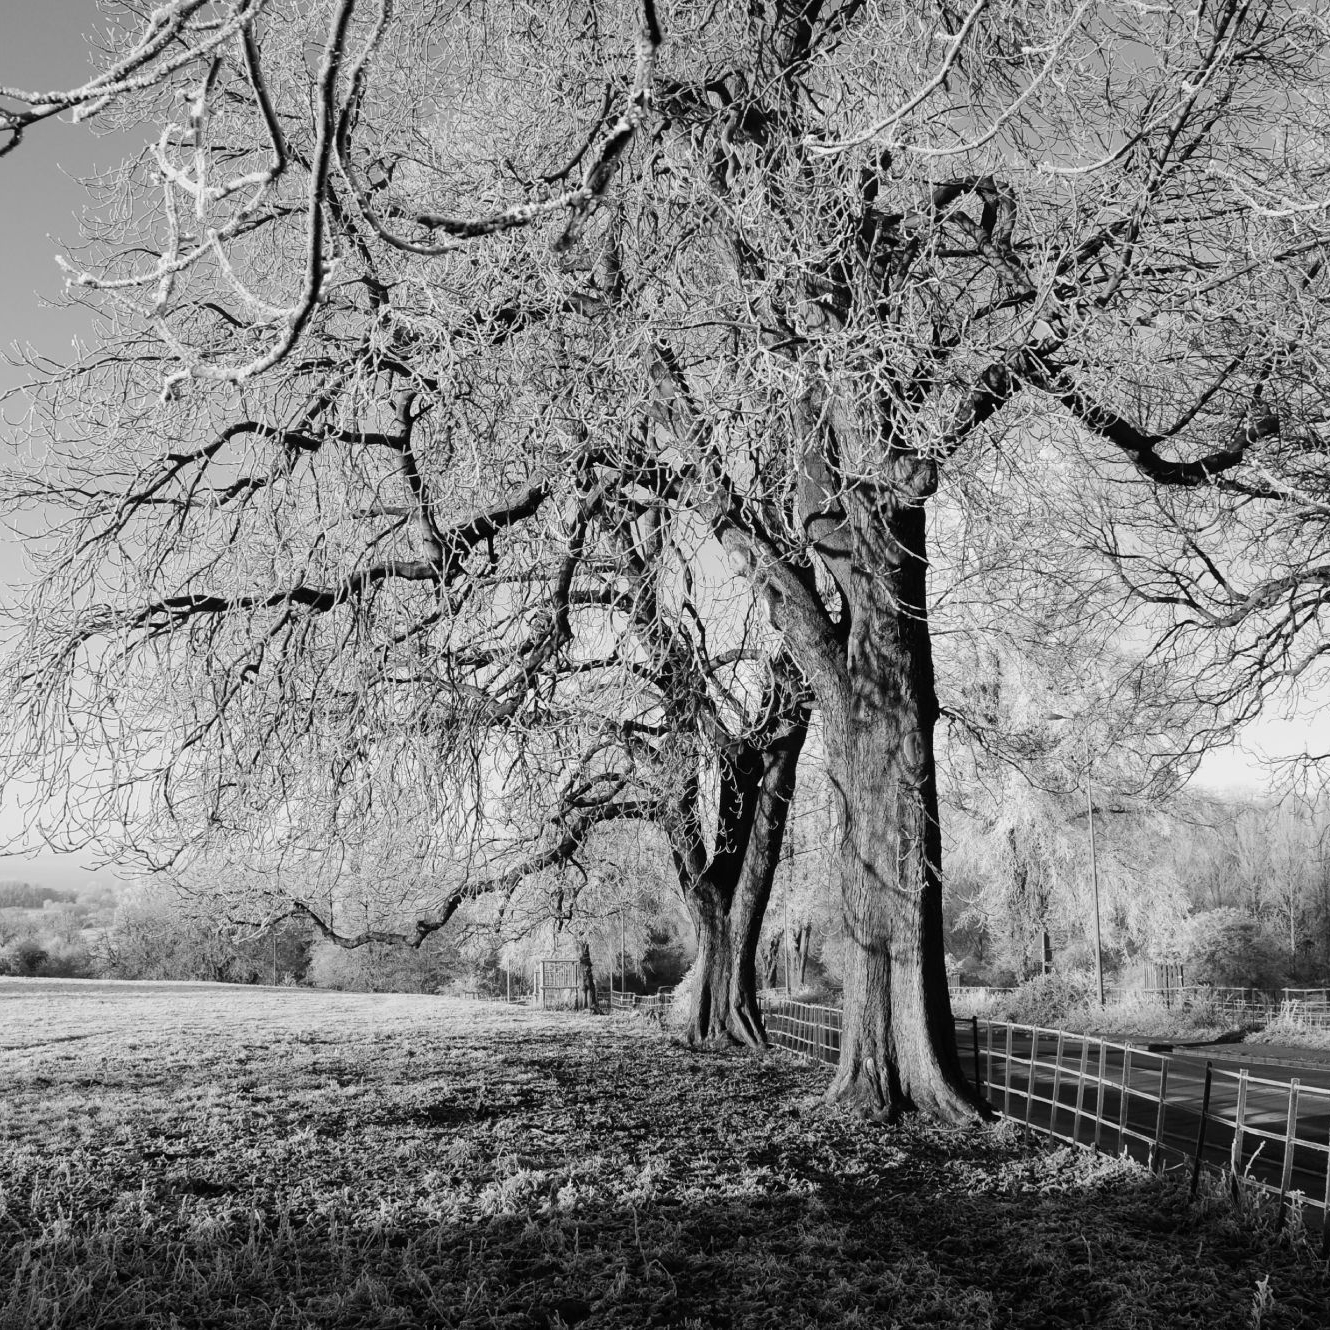 Black and White picture of two trees with no leaves in the middle of a field